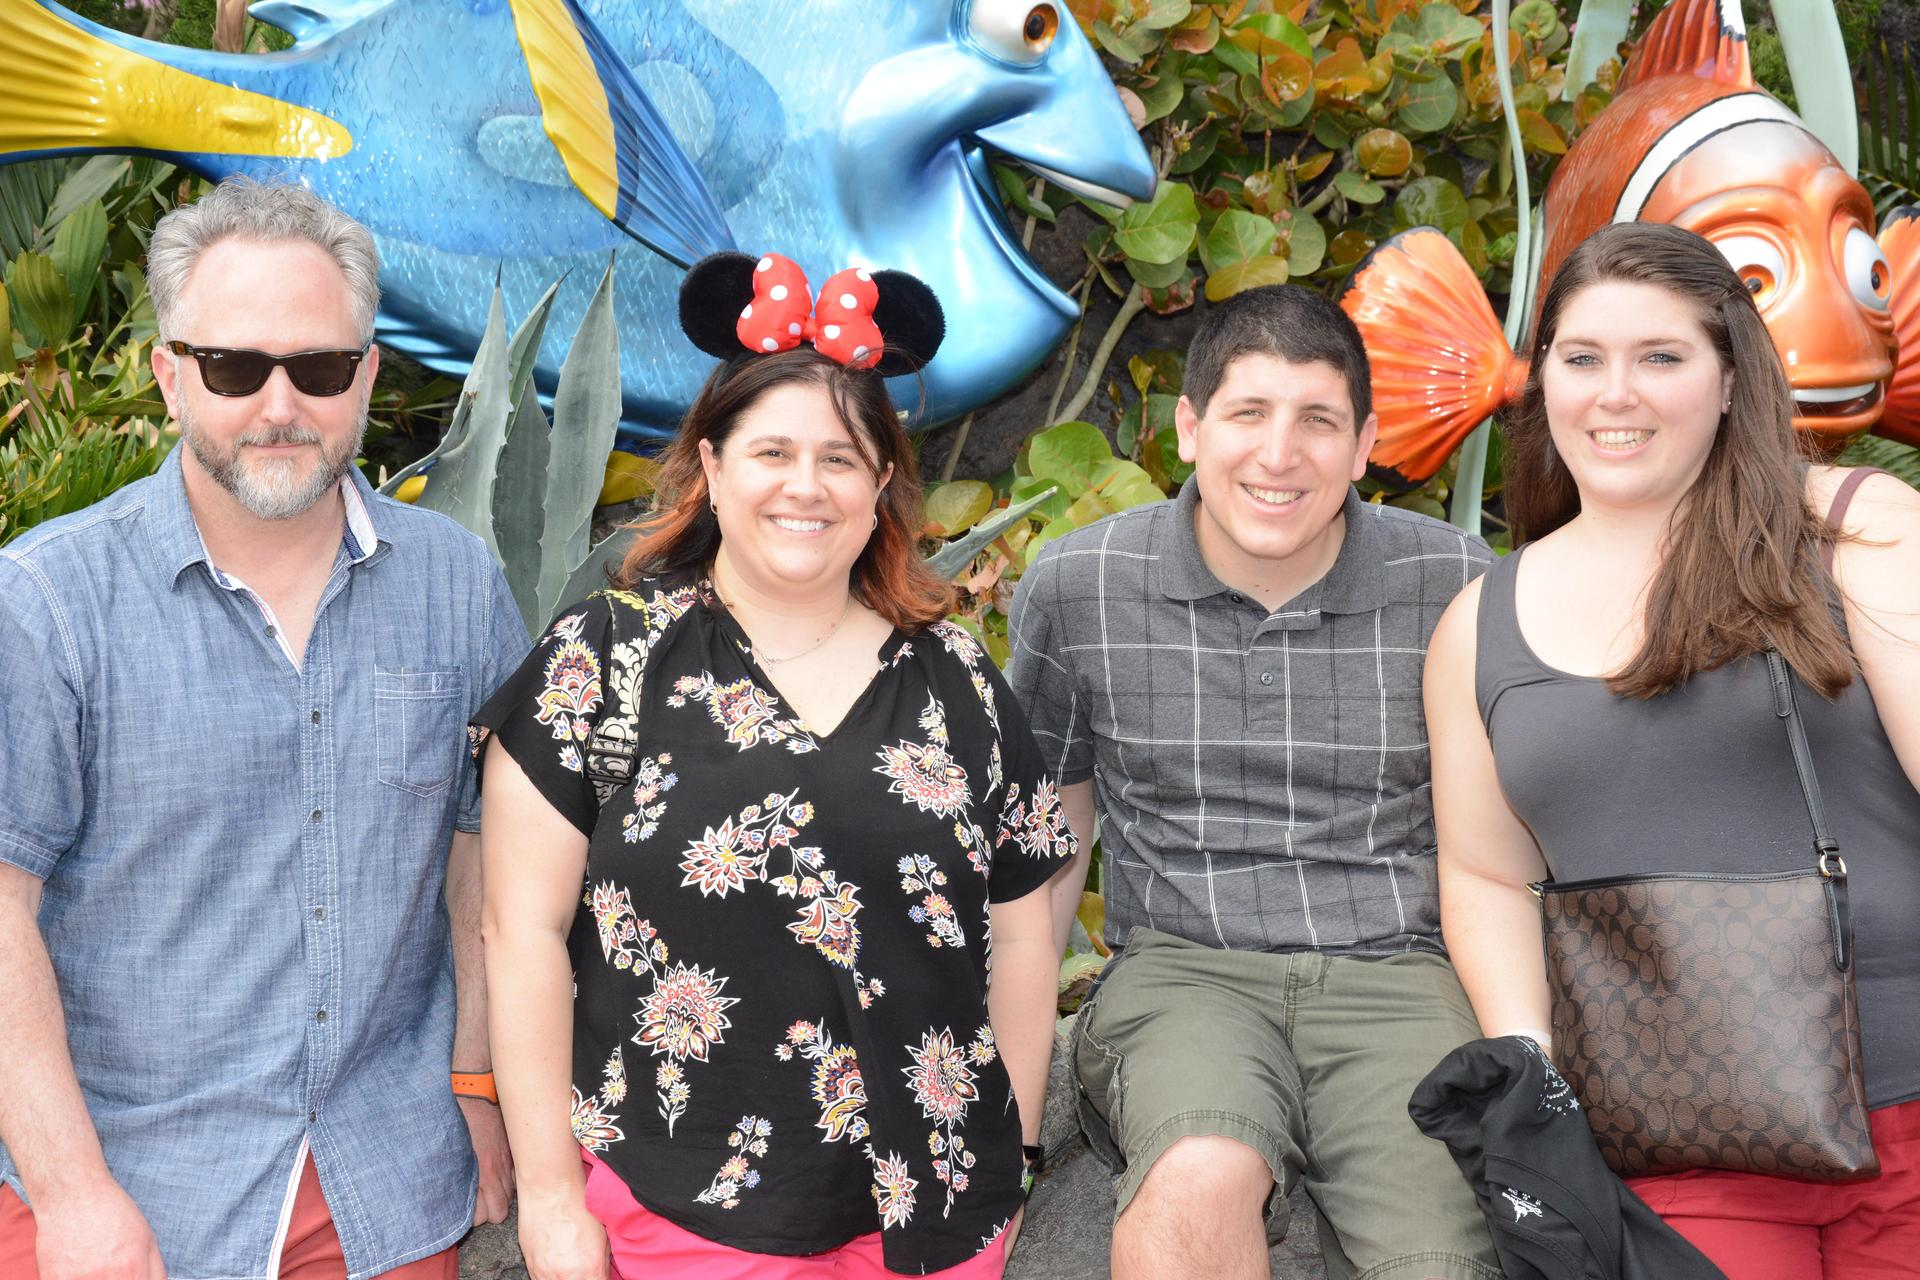 The Chaperones take a break with Nemo and friends!